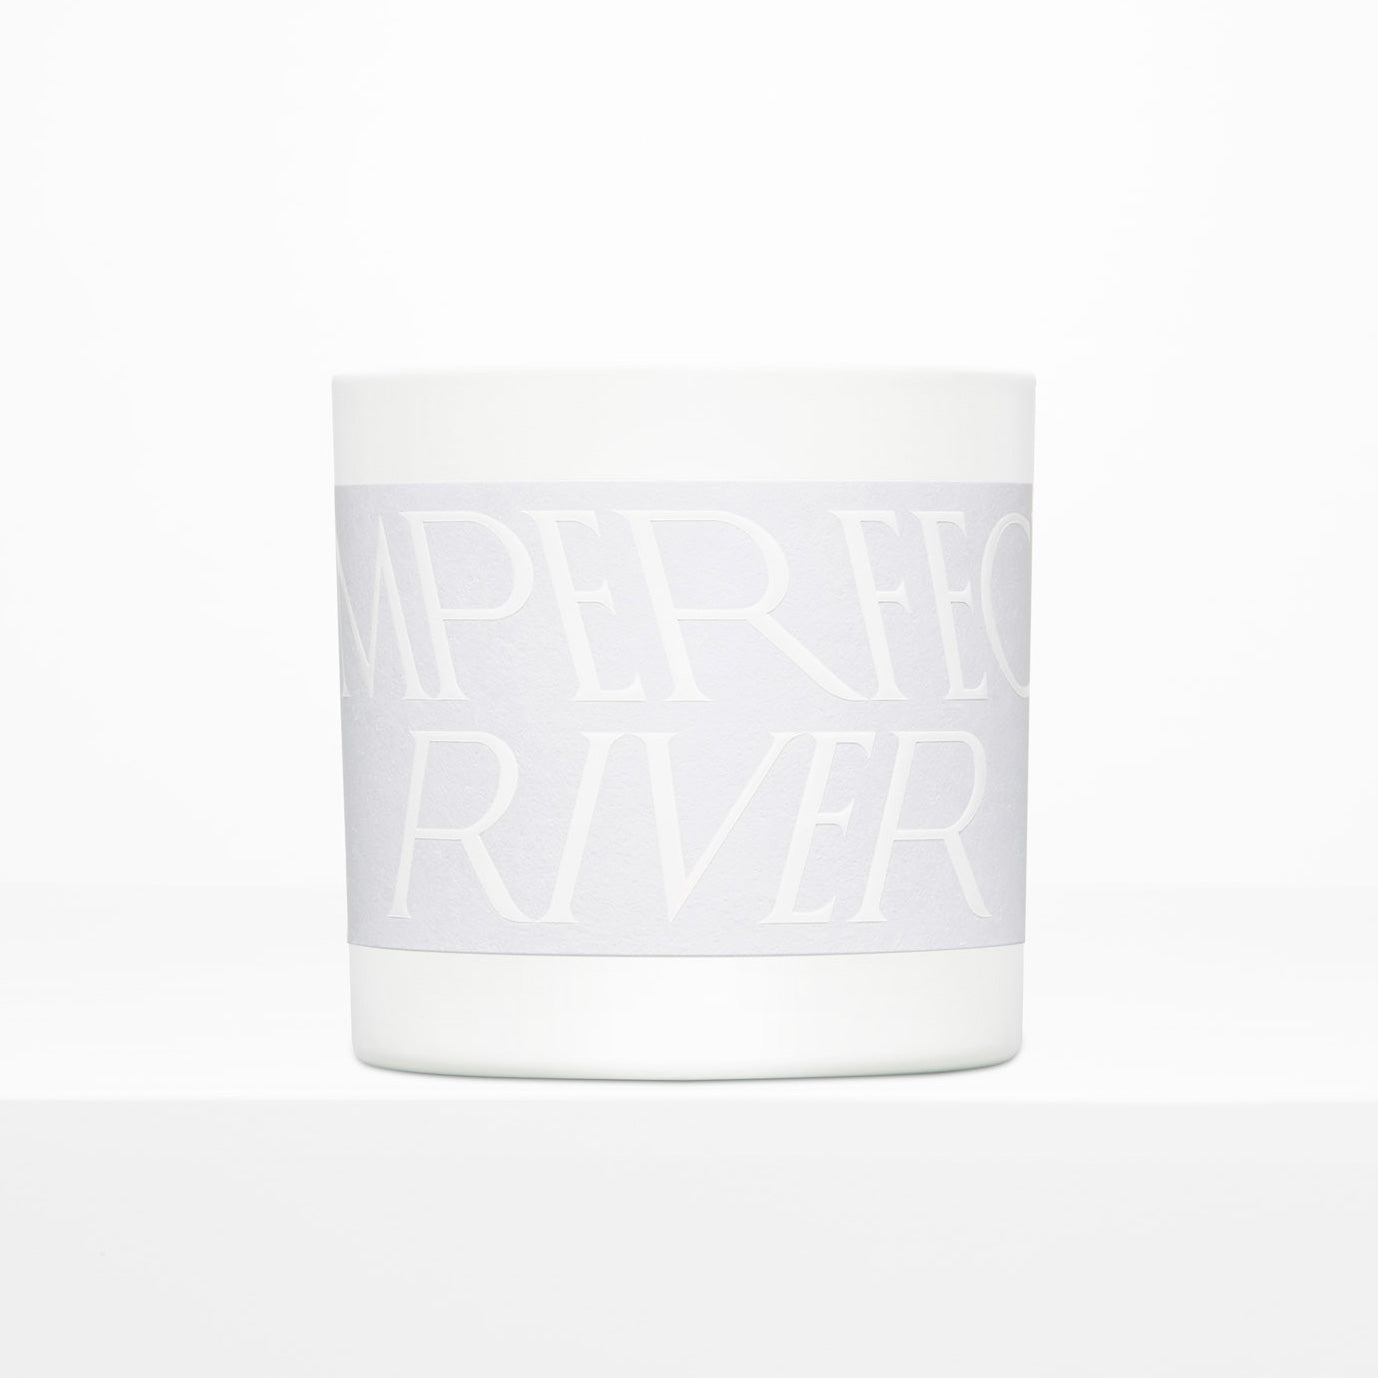 IMPERFECT RIVER SCENTED CANDLE